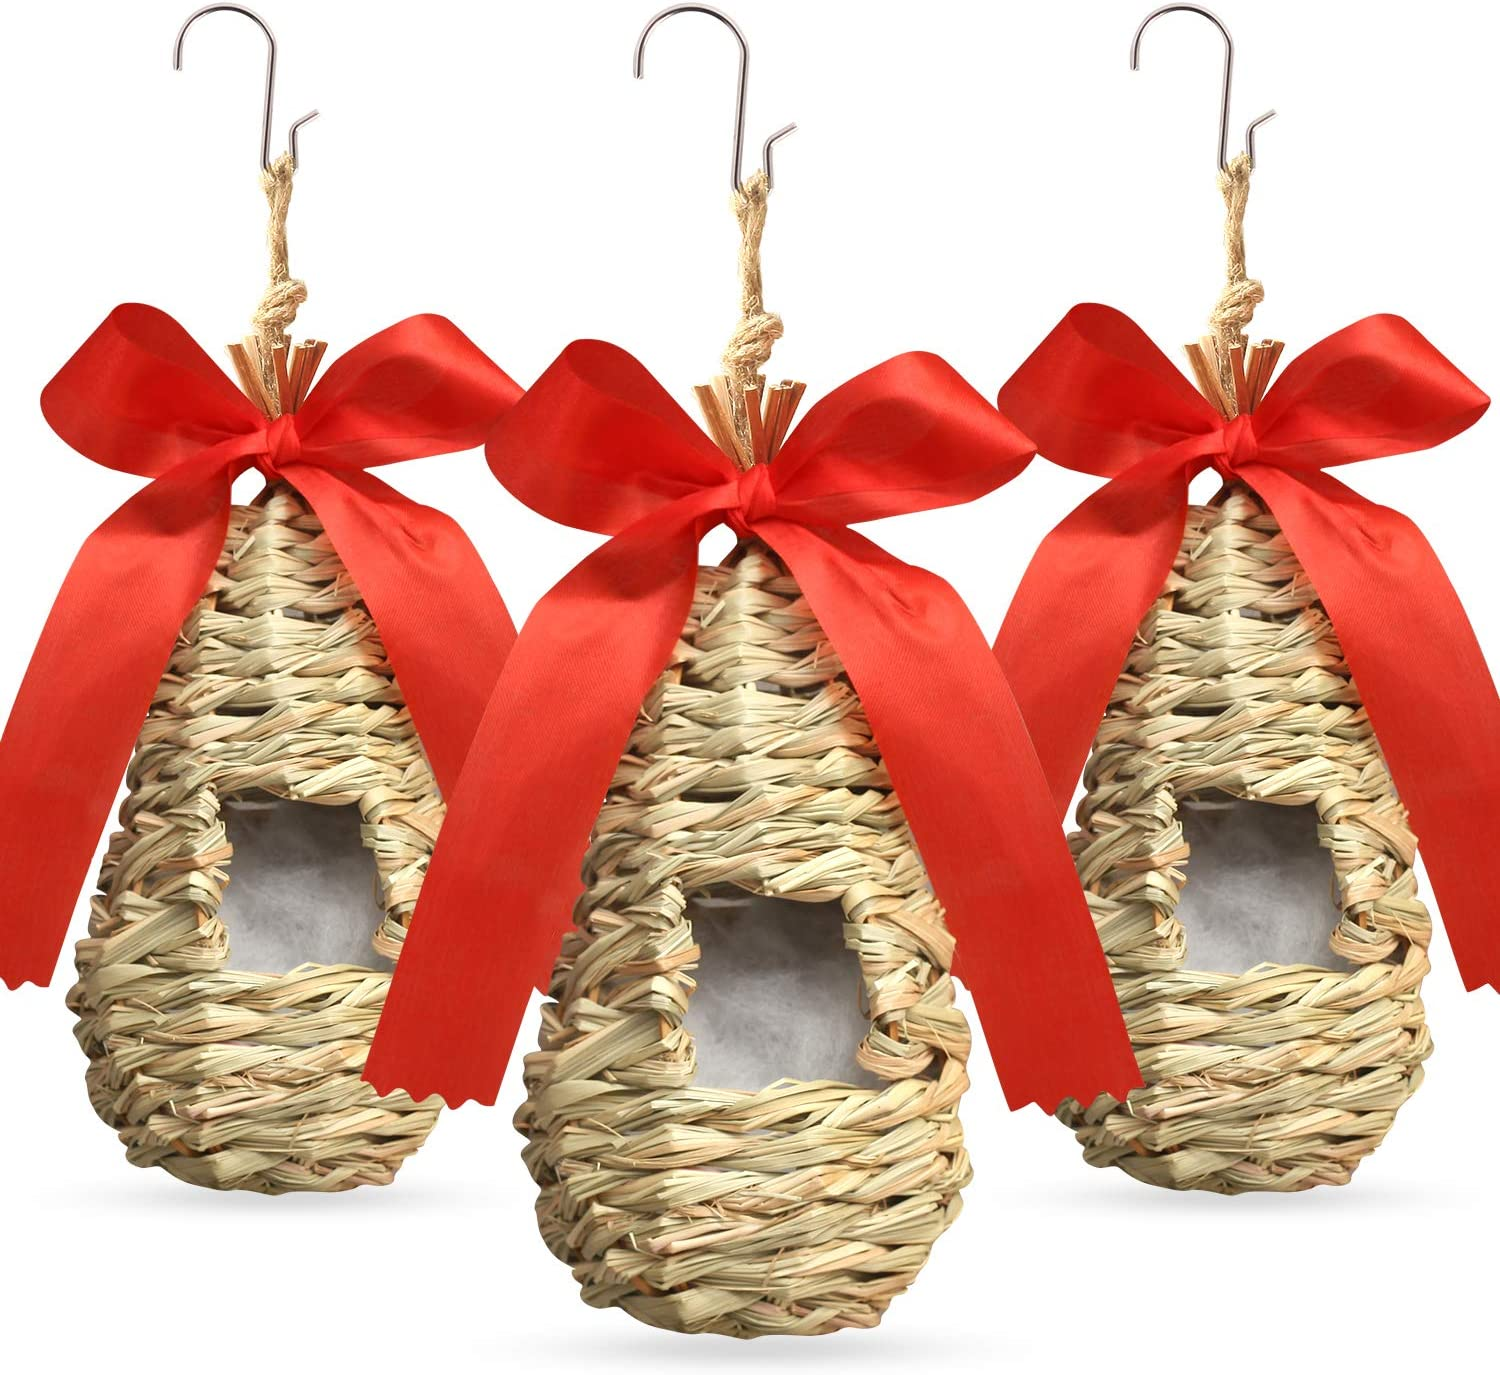 BRITEREE Hummingbird House for Outside Hanging, with Decor Red Ribbon & Nesting Cotton, Birdhouse Kit Set of 3